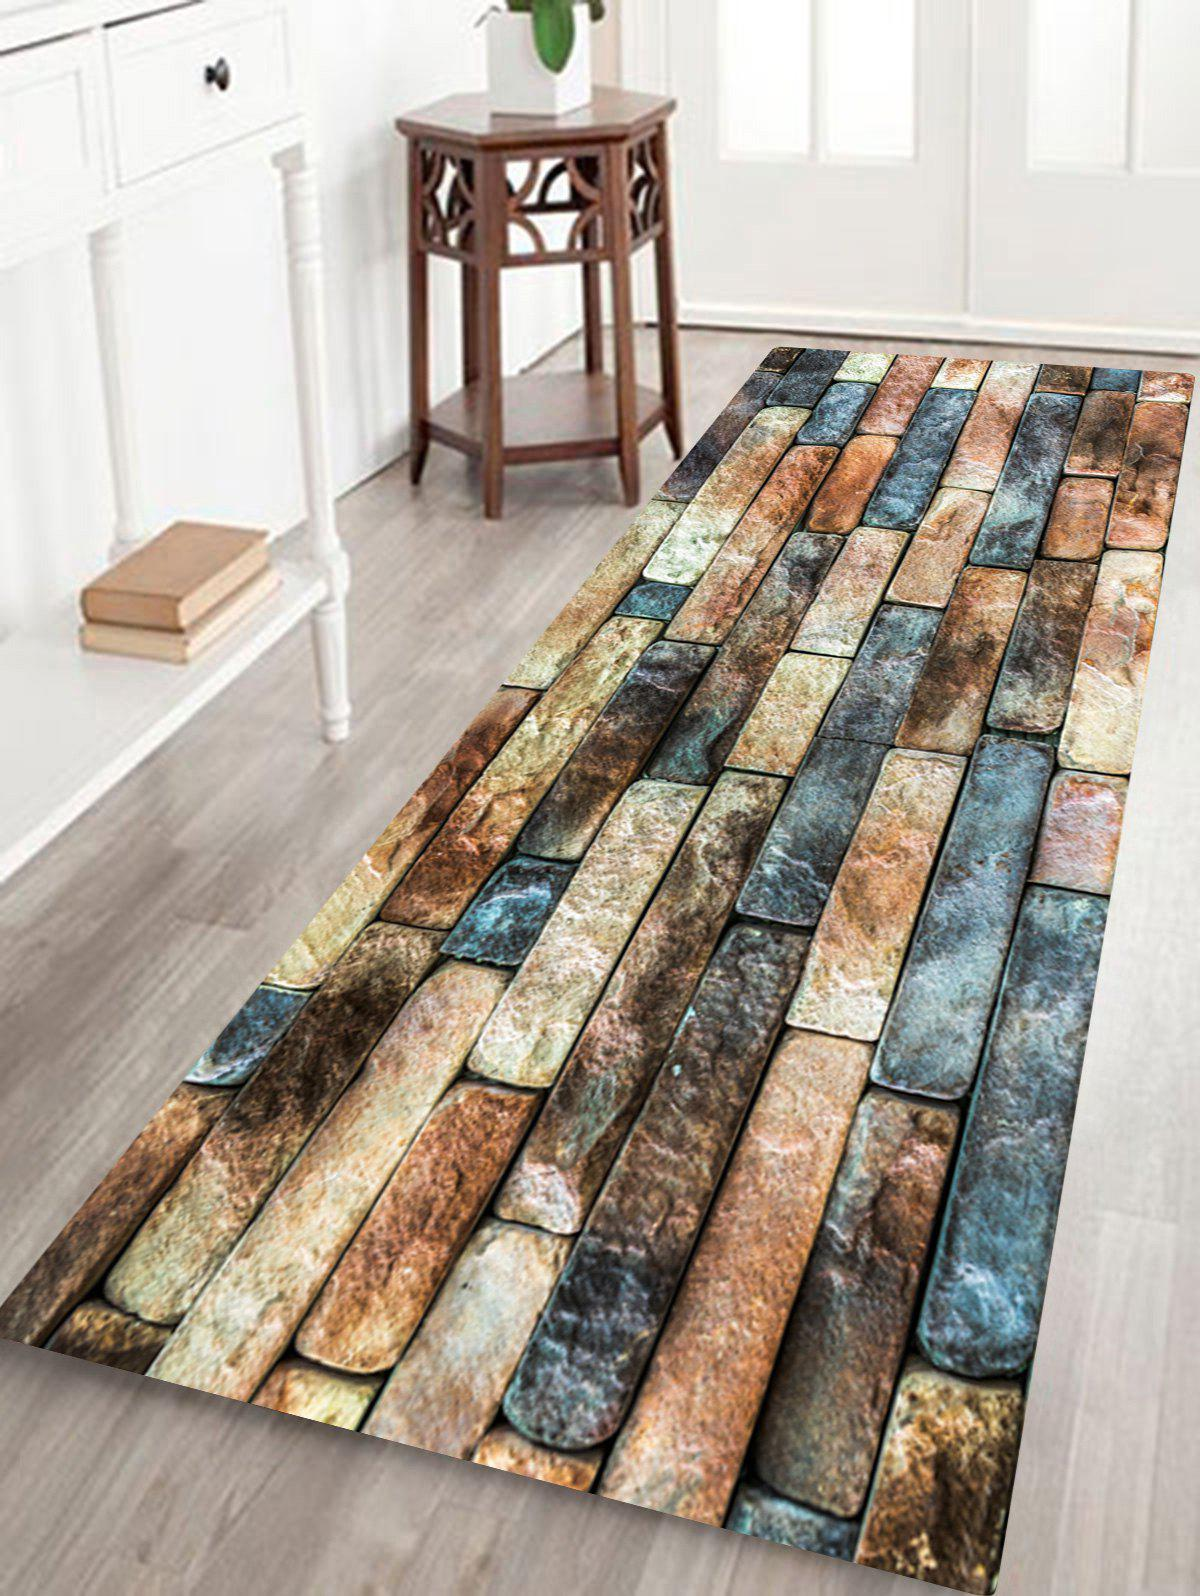 Brick Wall Pattern Floor Area Rug - COLORMIX W16 INCH * L47 INCH